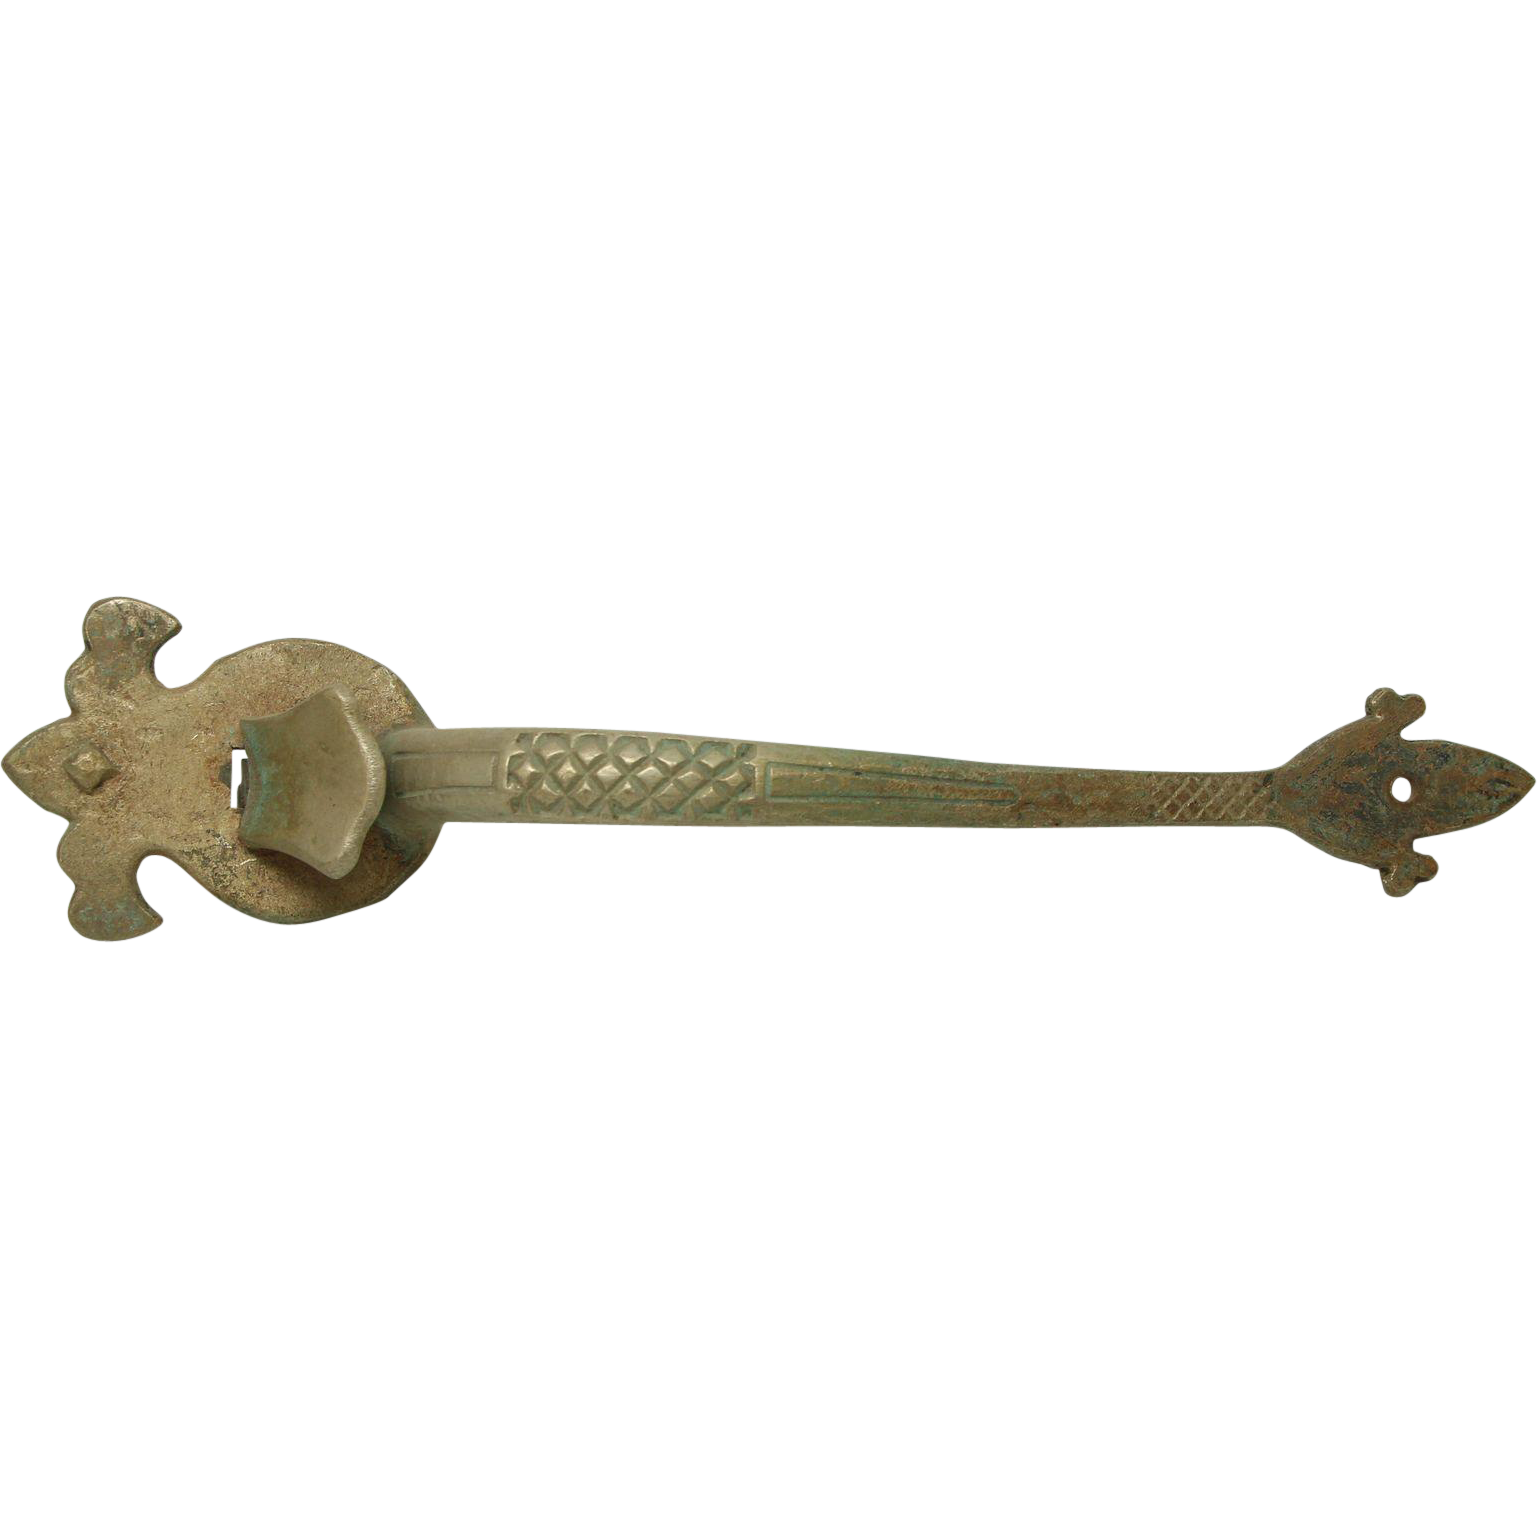 Iron Arts & Crafts door thumb latch handle